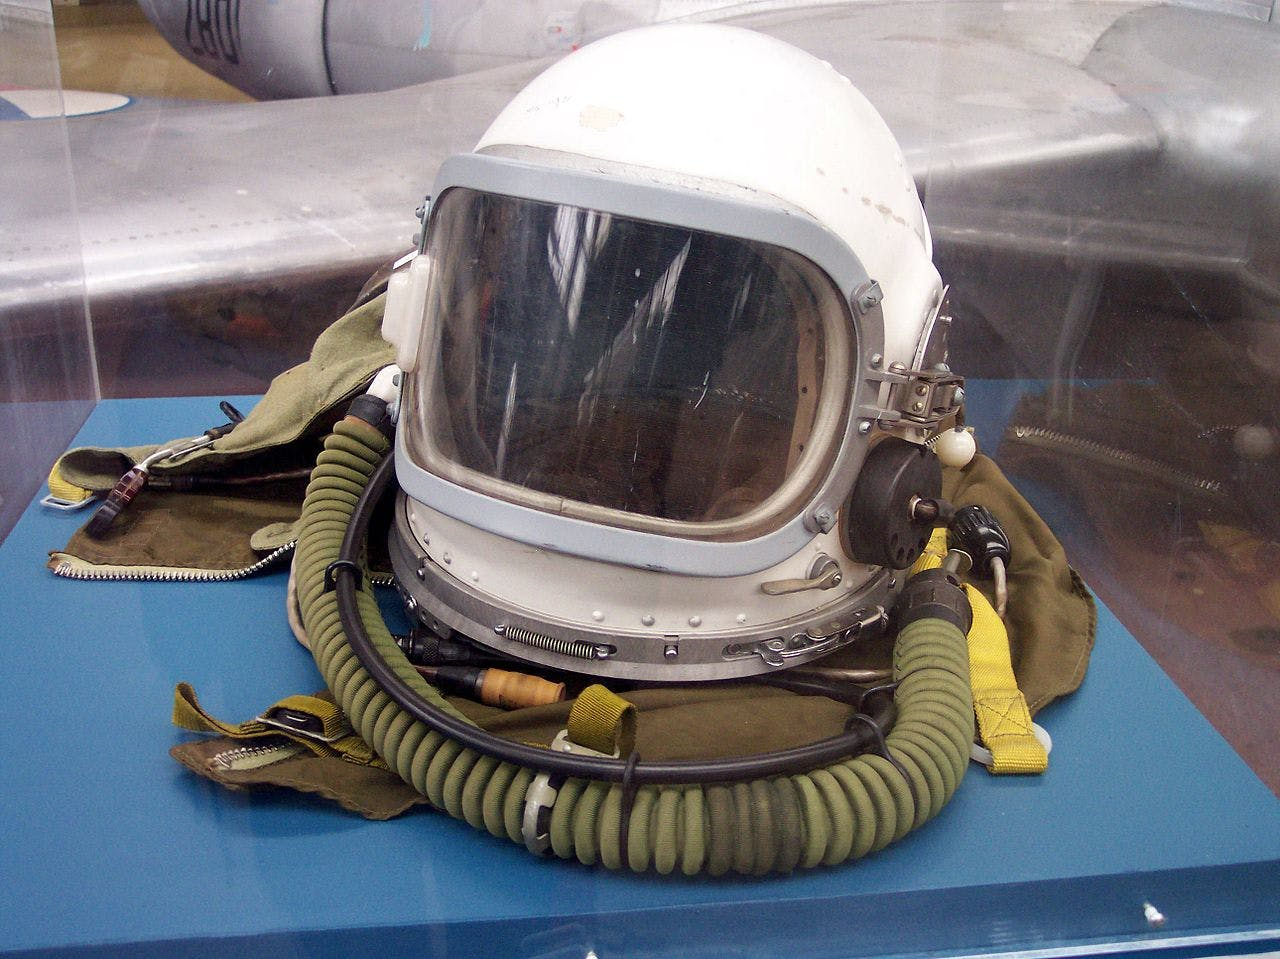 Soviet MiG-25 pilot helmet